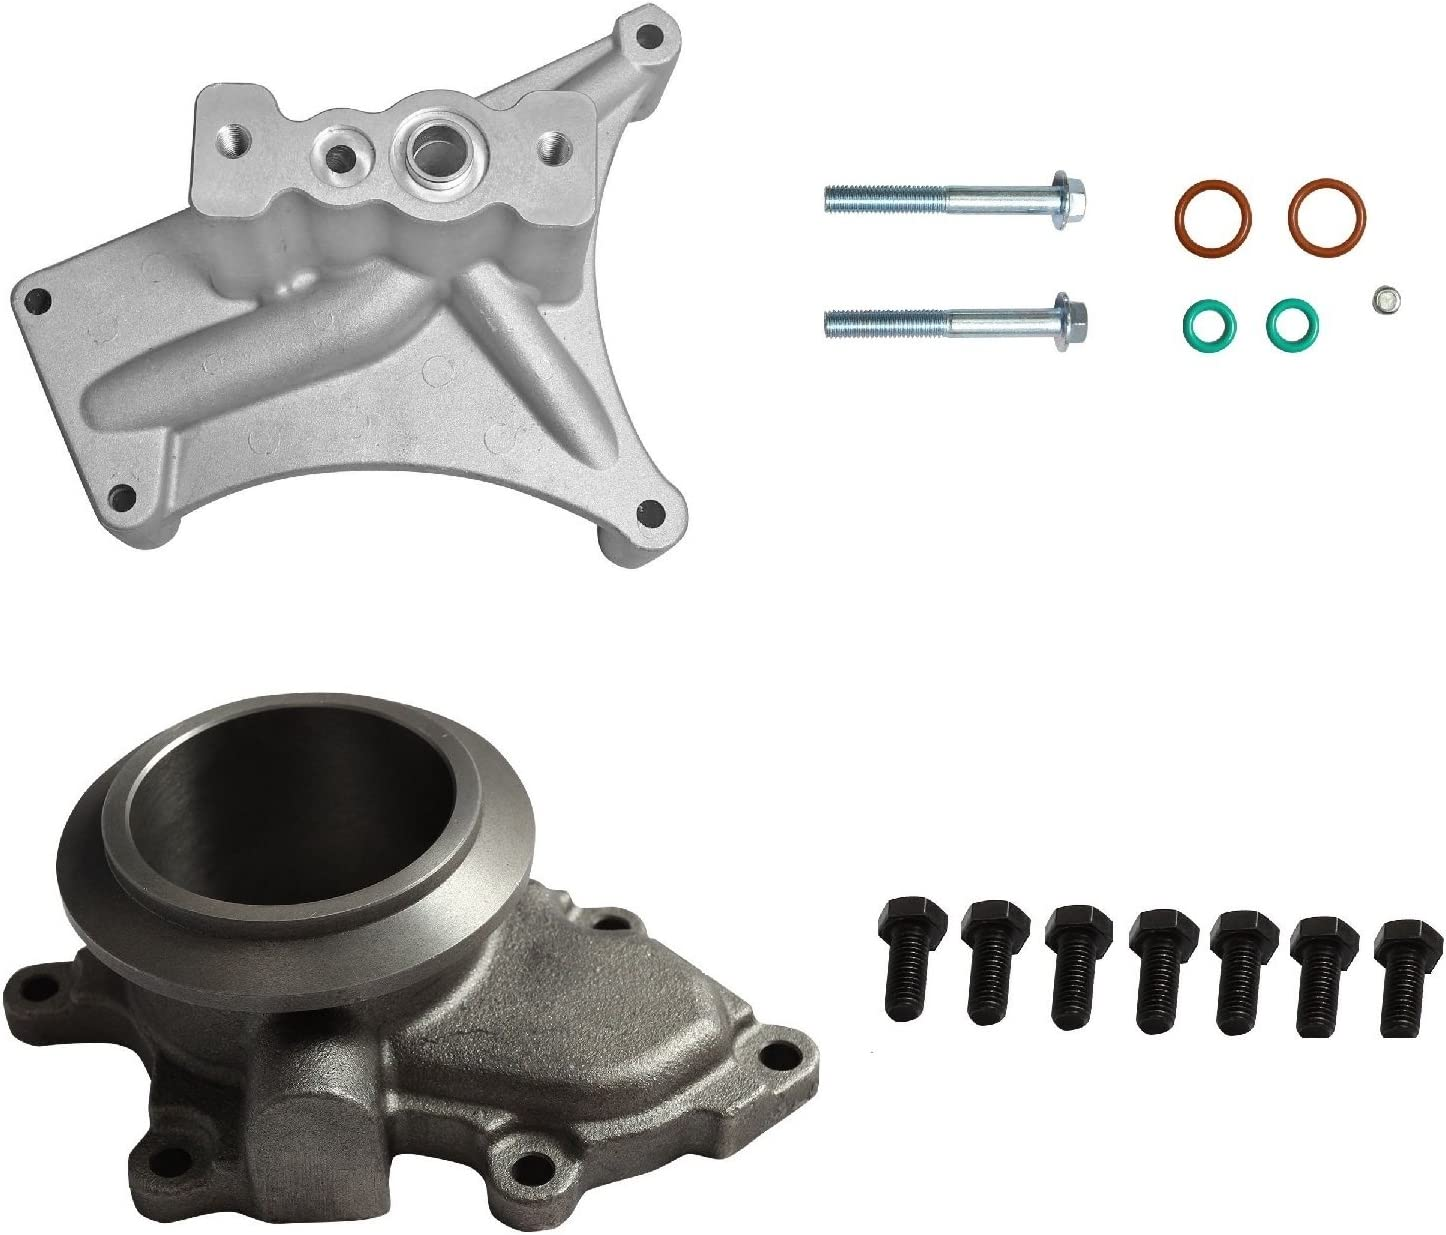 yjracing Turbo Pedestal Exhaust 限定価格セール 1年保証 Housing Repla Gaskets Up Pipes